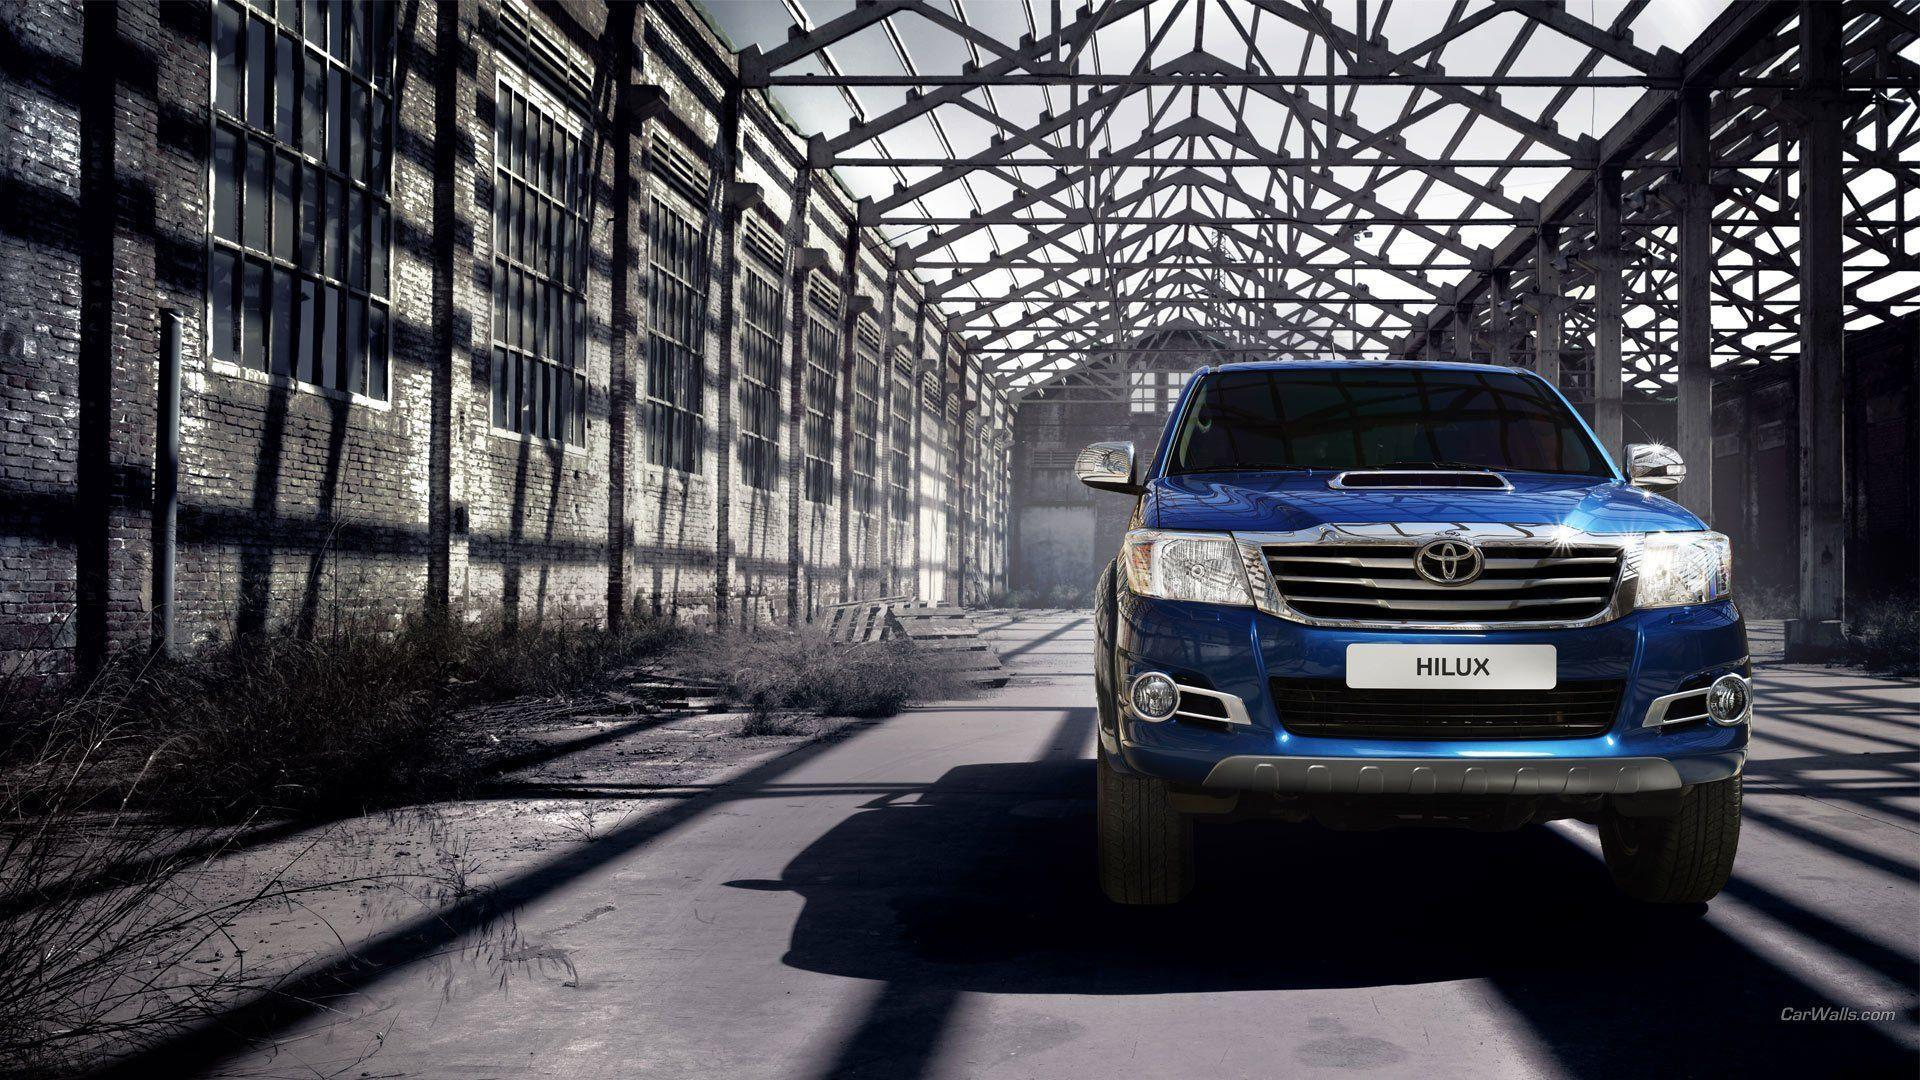 9 2014 Toyota Hilux Invincible HD Wallpapers